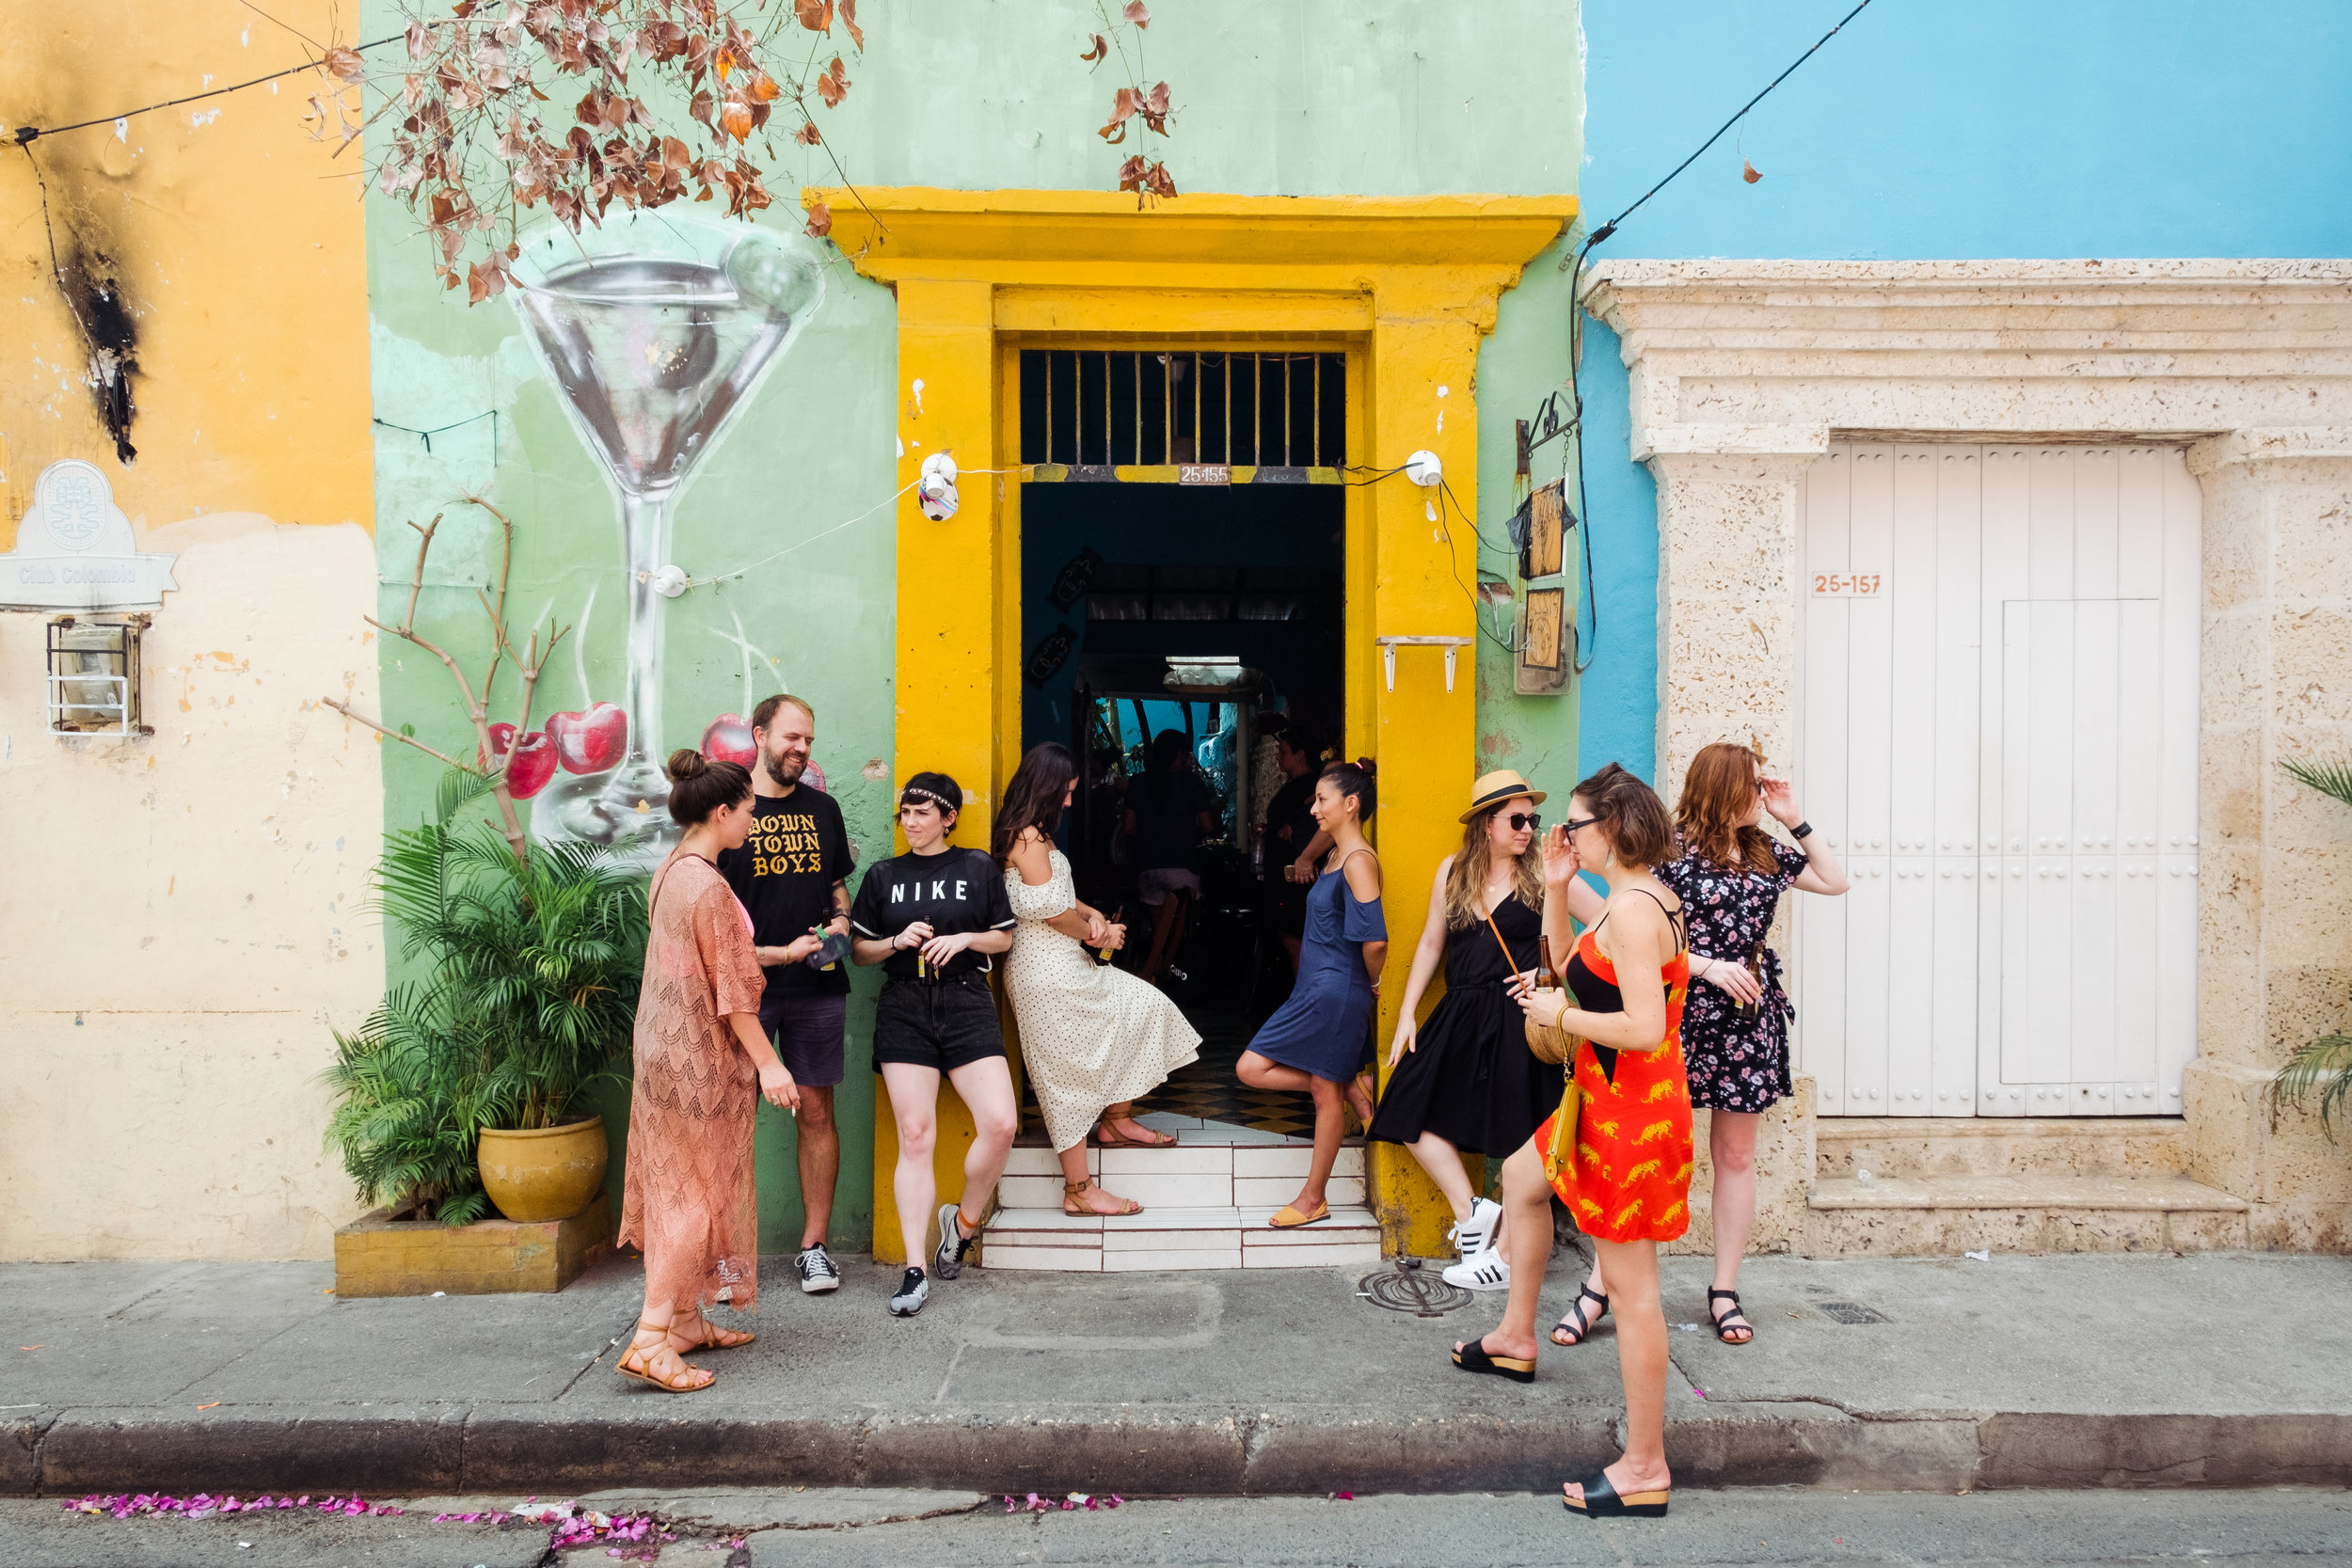 El Camino Travel ProtIp: If you visit Cartagena, don't forget to visit the up and coming neighborhood of Getsemani. Photo by Amanda Villarosa for El Camino Travel